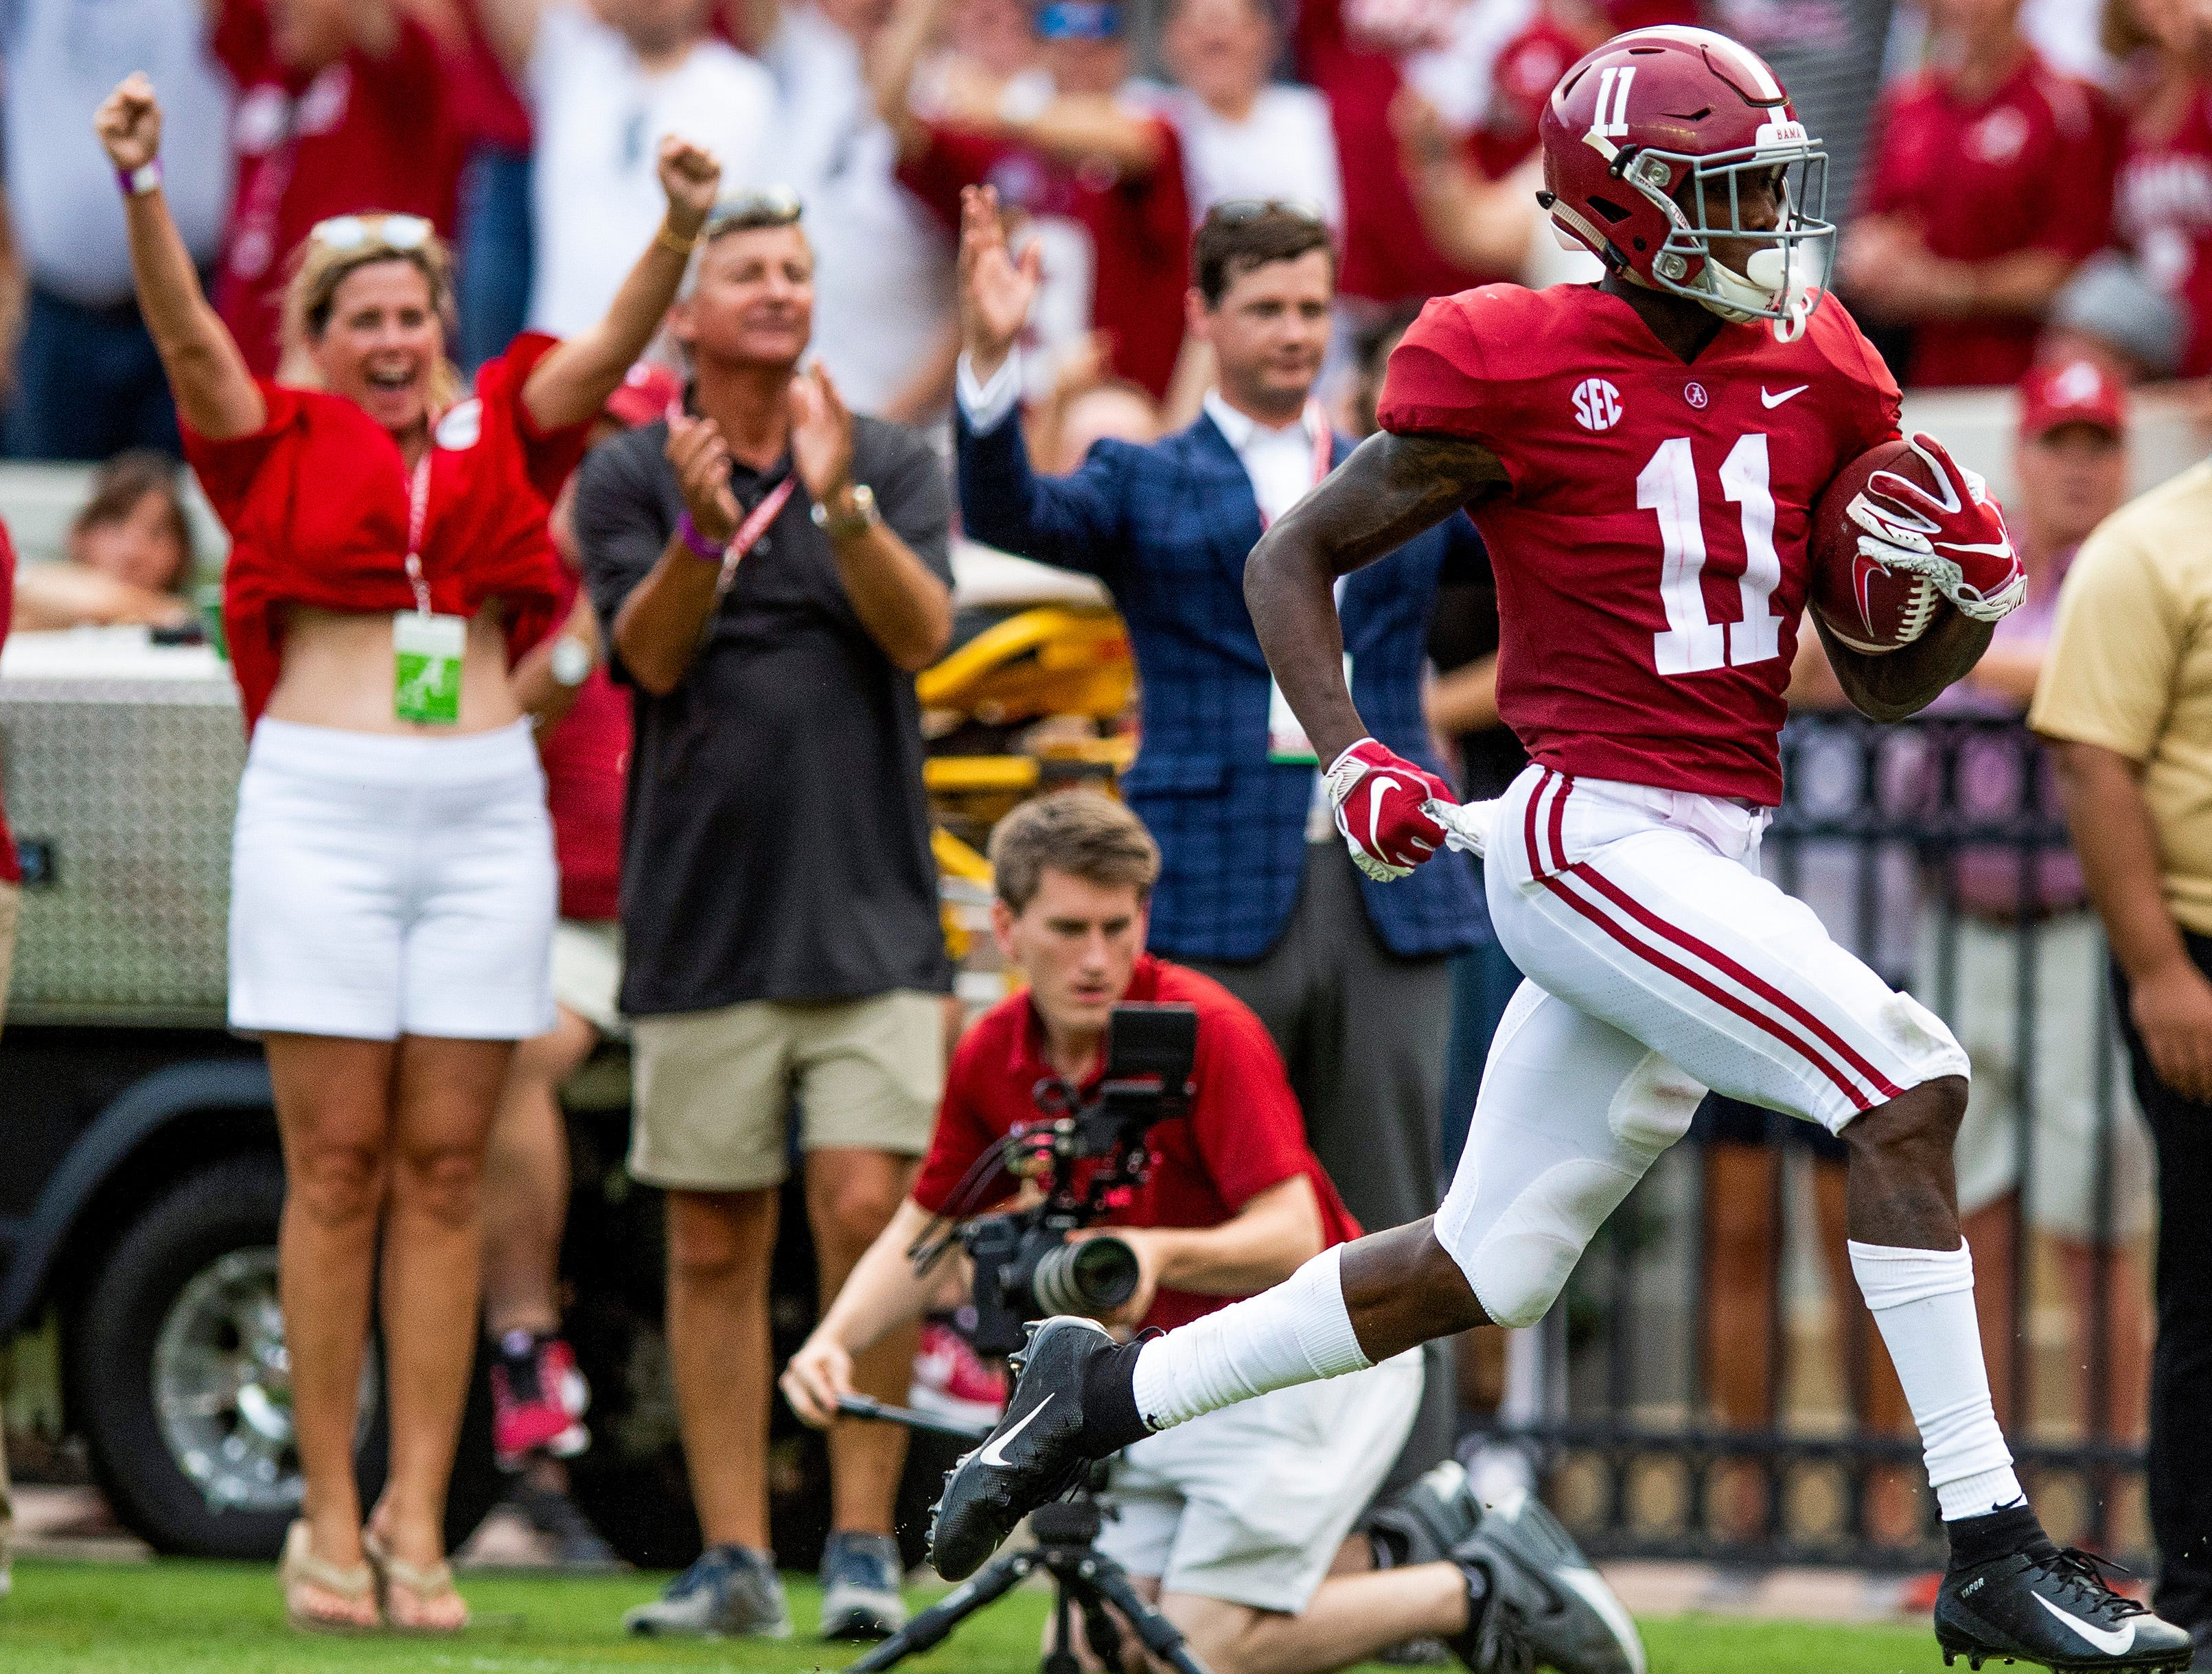 Alabama wide receiver Henry Ruggs, III, (11) scores a touchdown against Texas A&M in second half action in Tuscaloosa, Ala., on Saturday September 22, 2018.